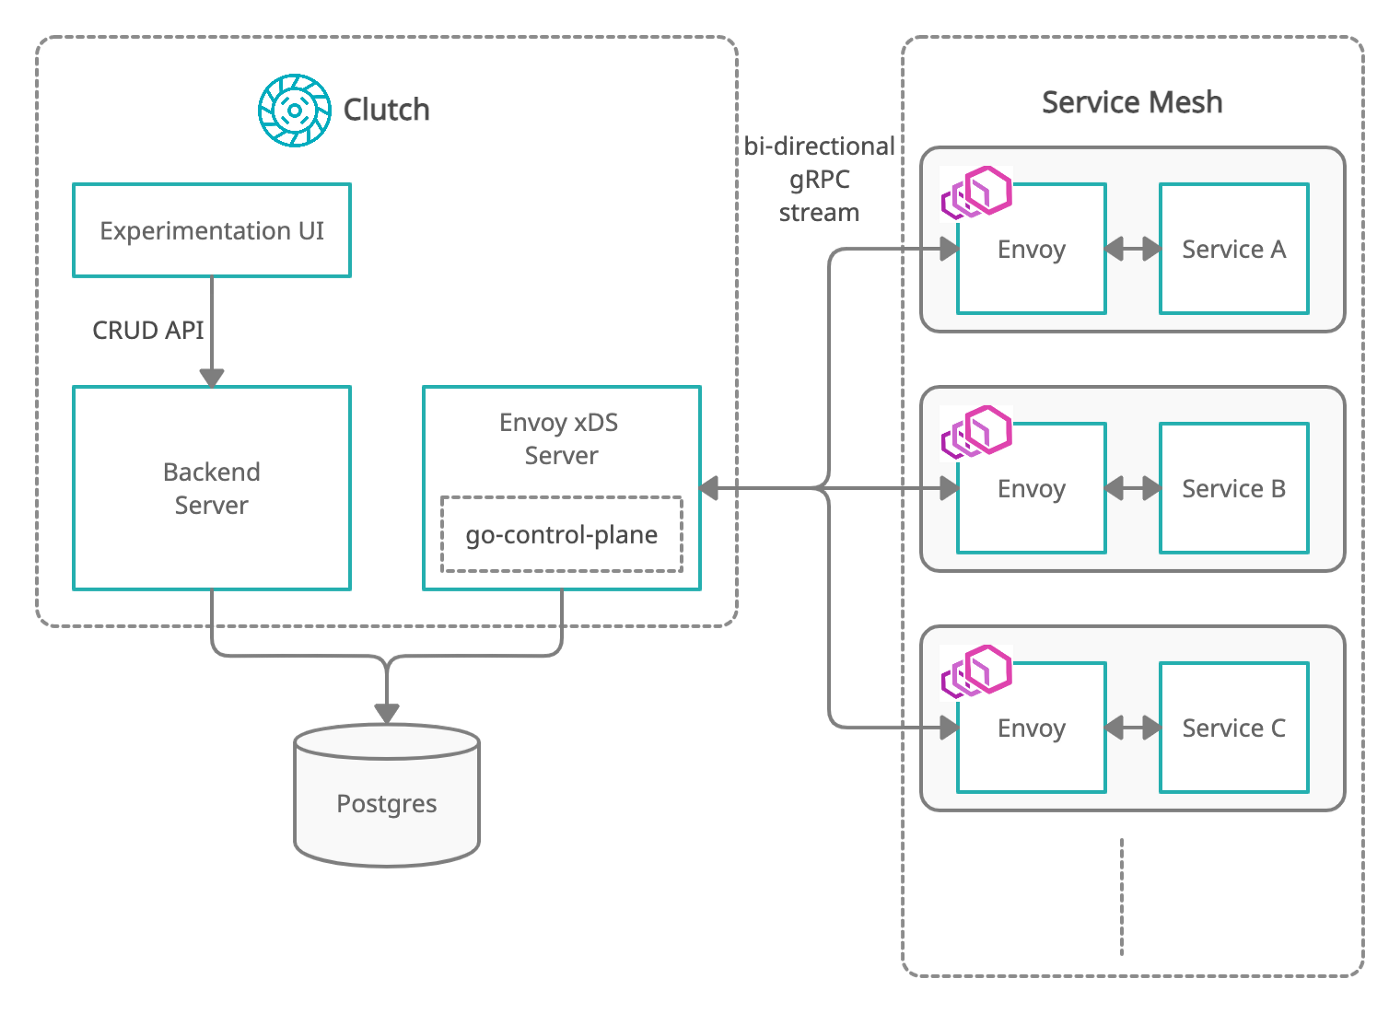 Architecture of Chaos Experimentation Framework and its interaction with Envoy service mesh